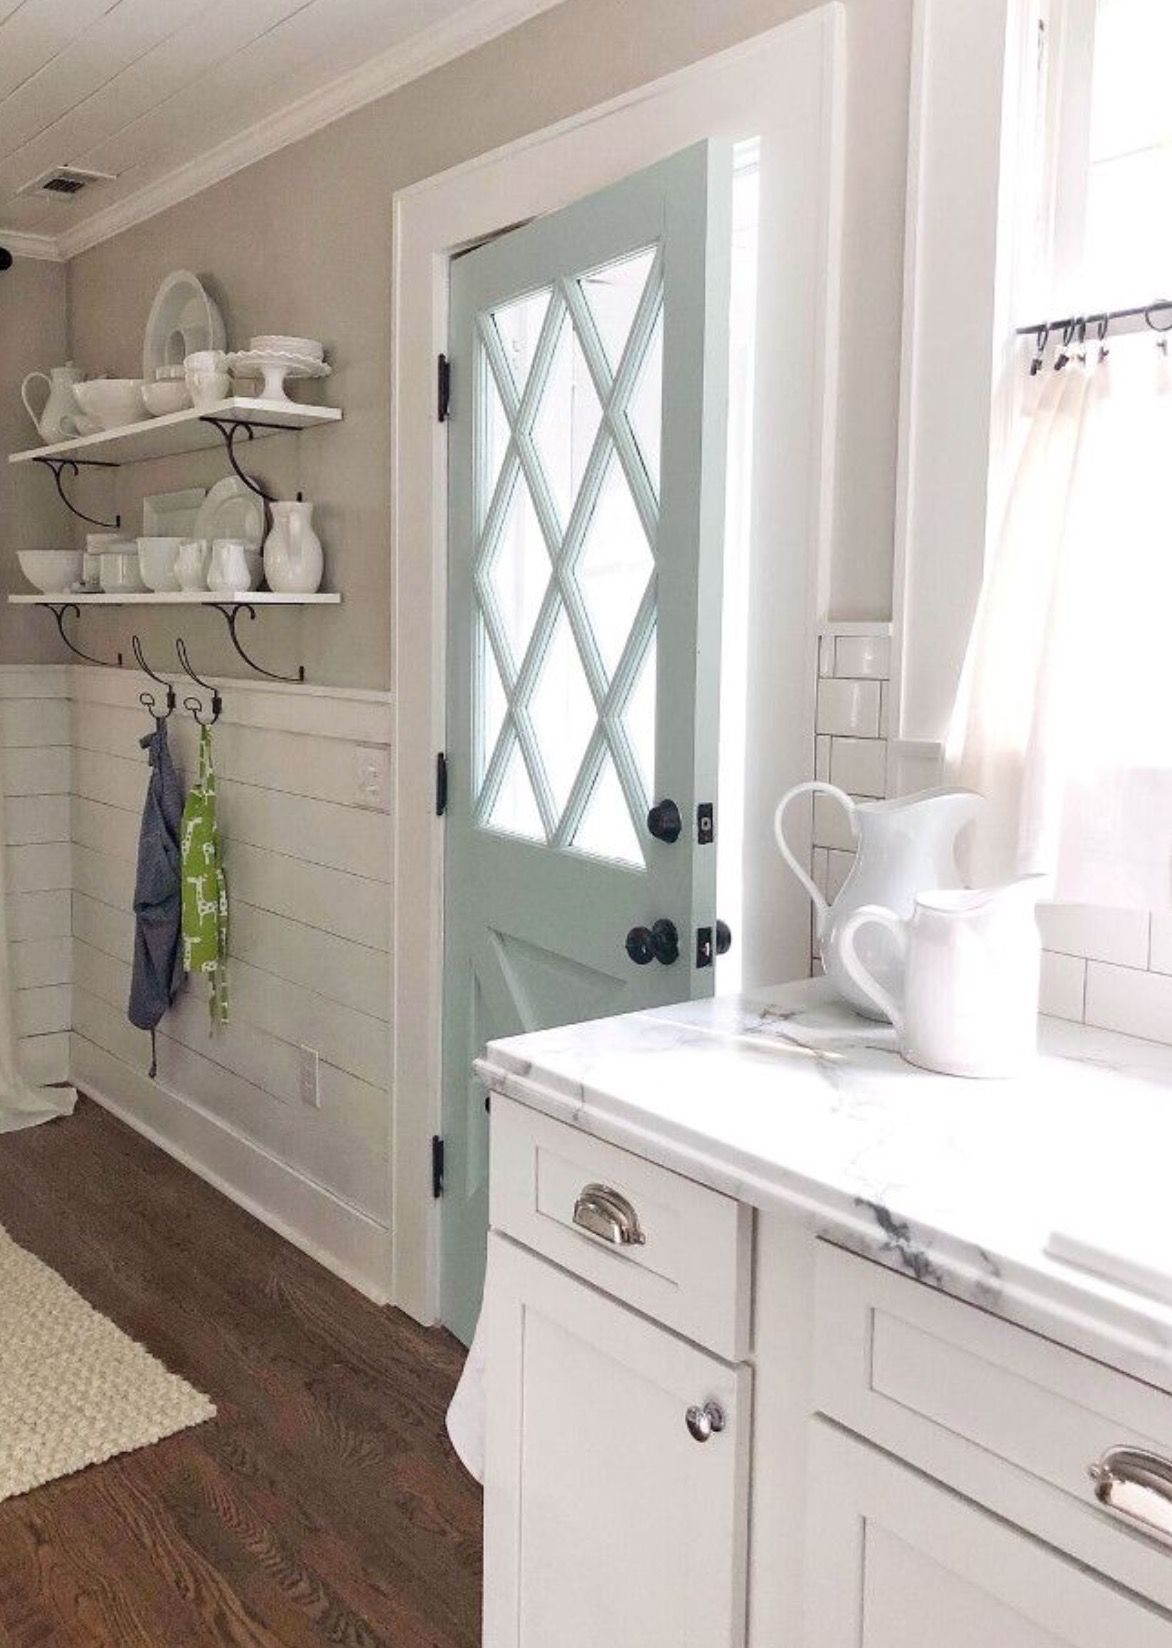 Agreeable gray with Seasalt paint and white trim color - Sherwin Williams - kitchen - mud room #sherwinwilliamsagreeablegray